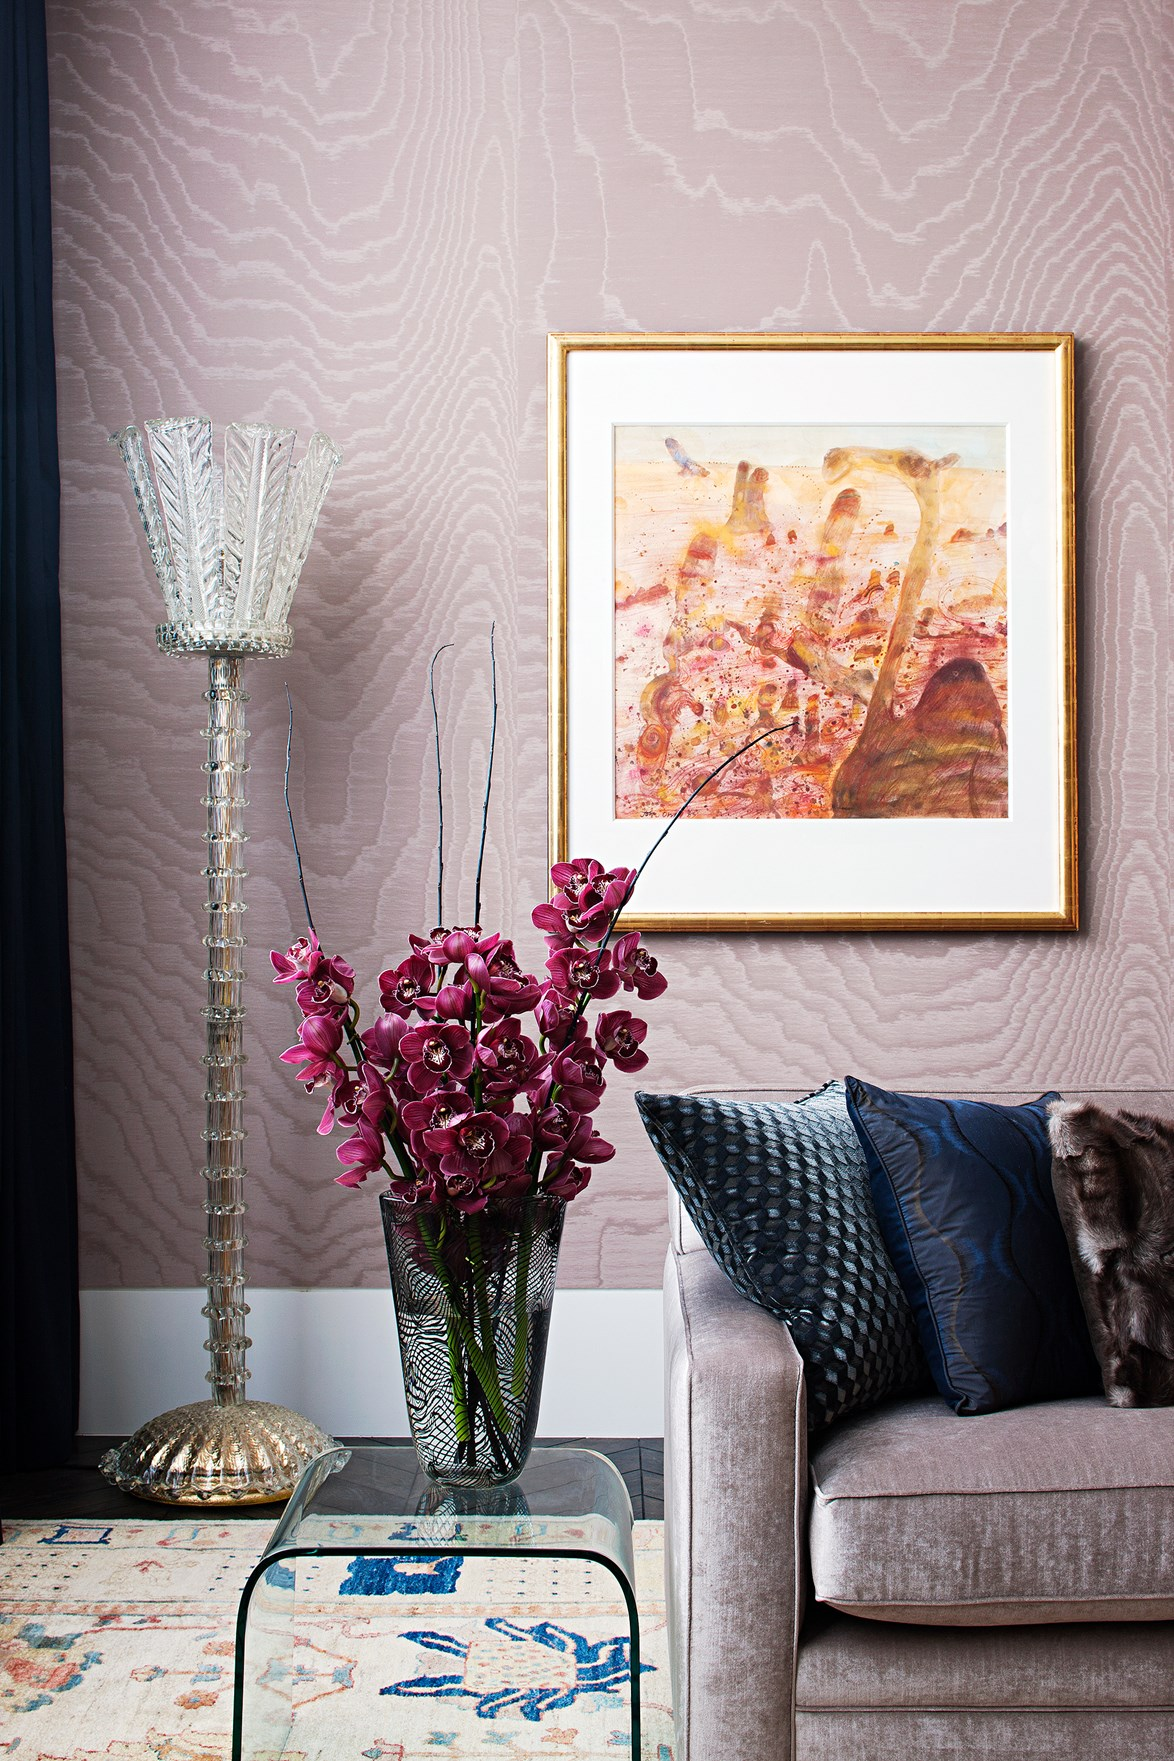 Dubbed 'Millennial pink,' the colour-of-the-moment is re-imagined in this gorgeously textured moiré wallpaper in this  [luxurious Melbourne penthouse](http://www.homestolove.com.au/melbourne-penthouse-reminiscent-of-beautiful-old-hotel-4622). *Photo: Shannon McGrath / Belle*